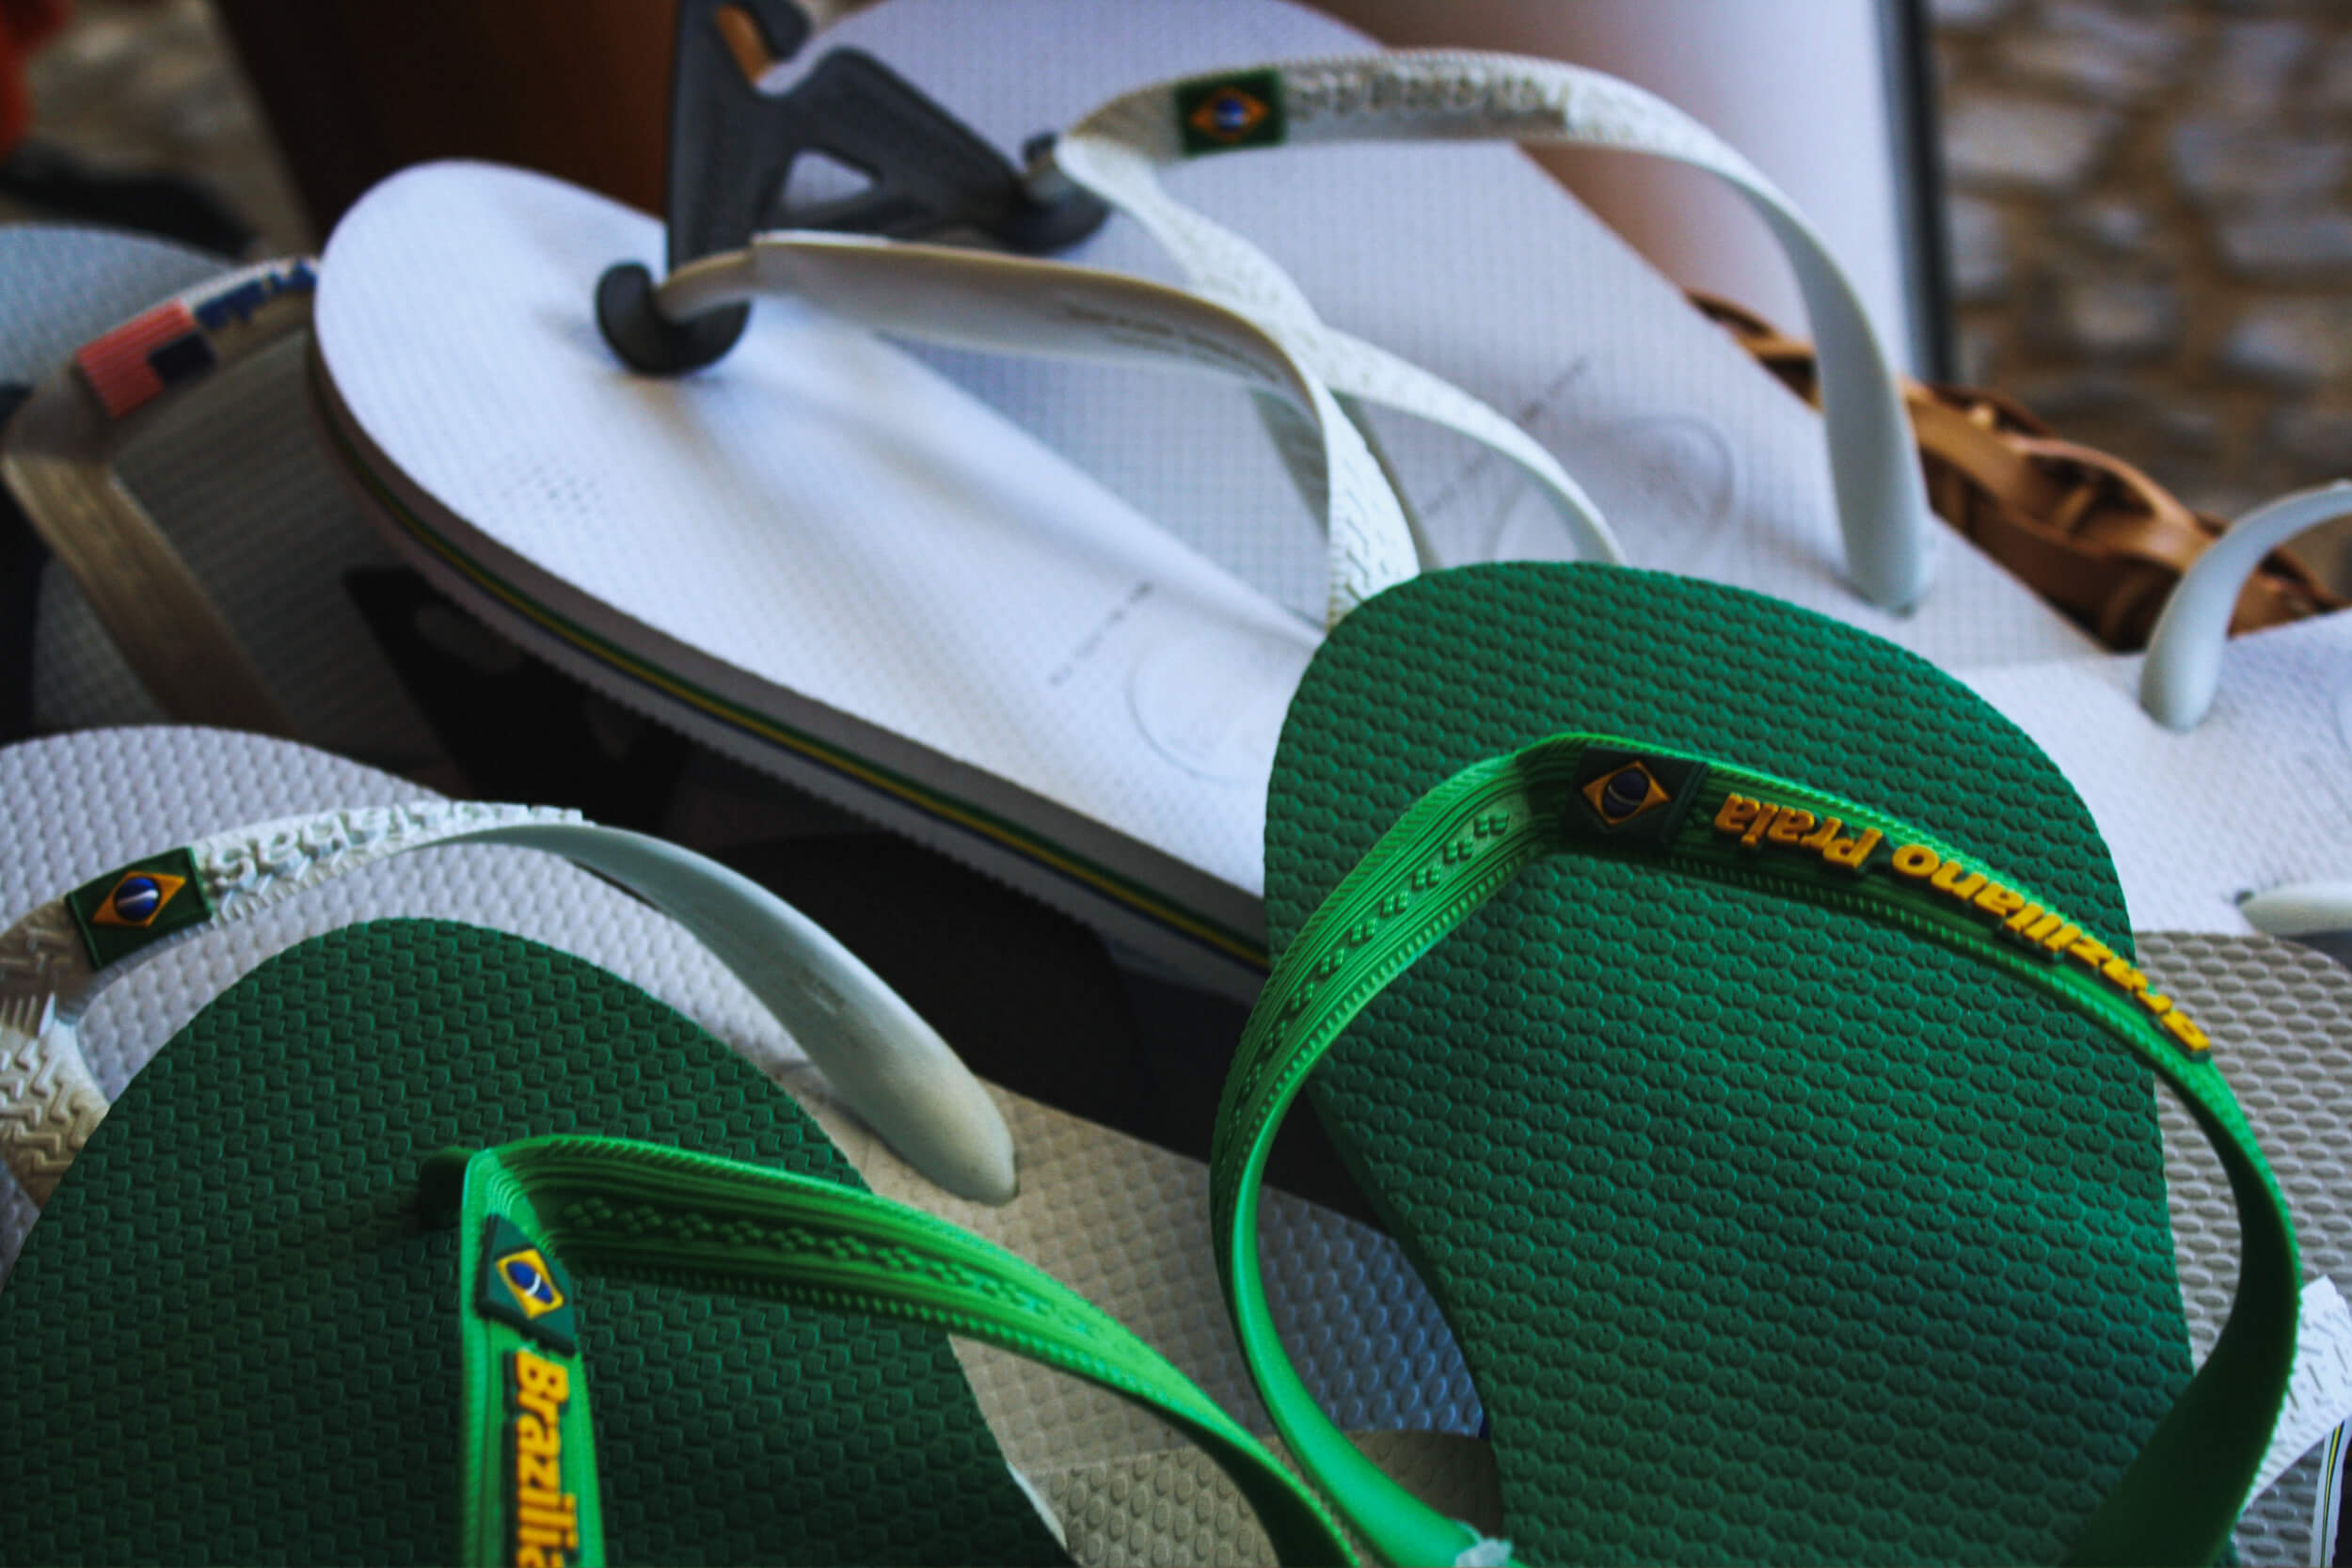 A basket filled with green and white flip flops, cute walking shoes for women, sits on the sidewalk.